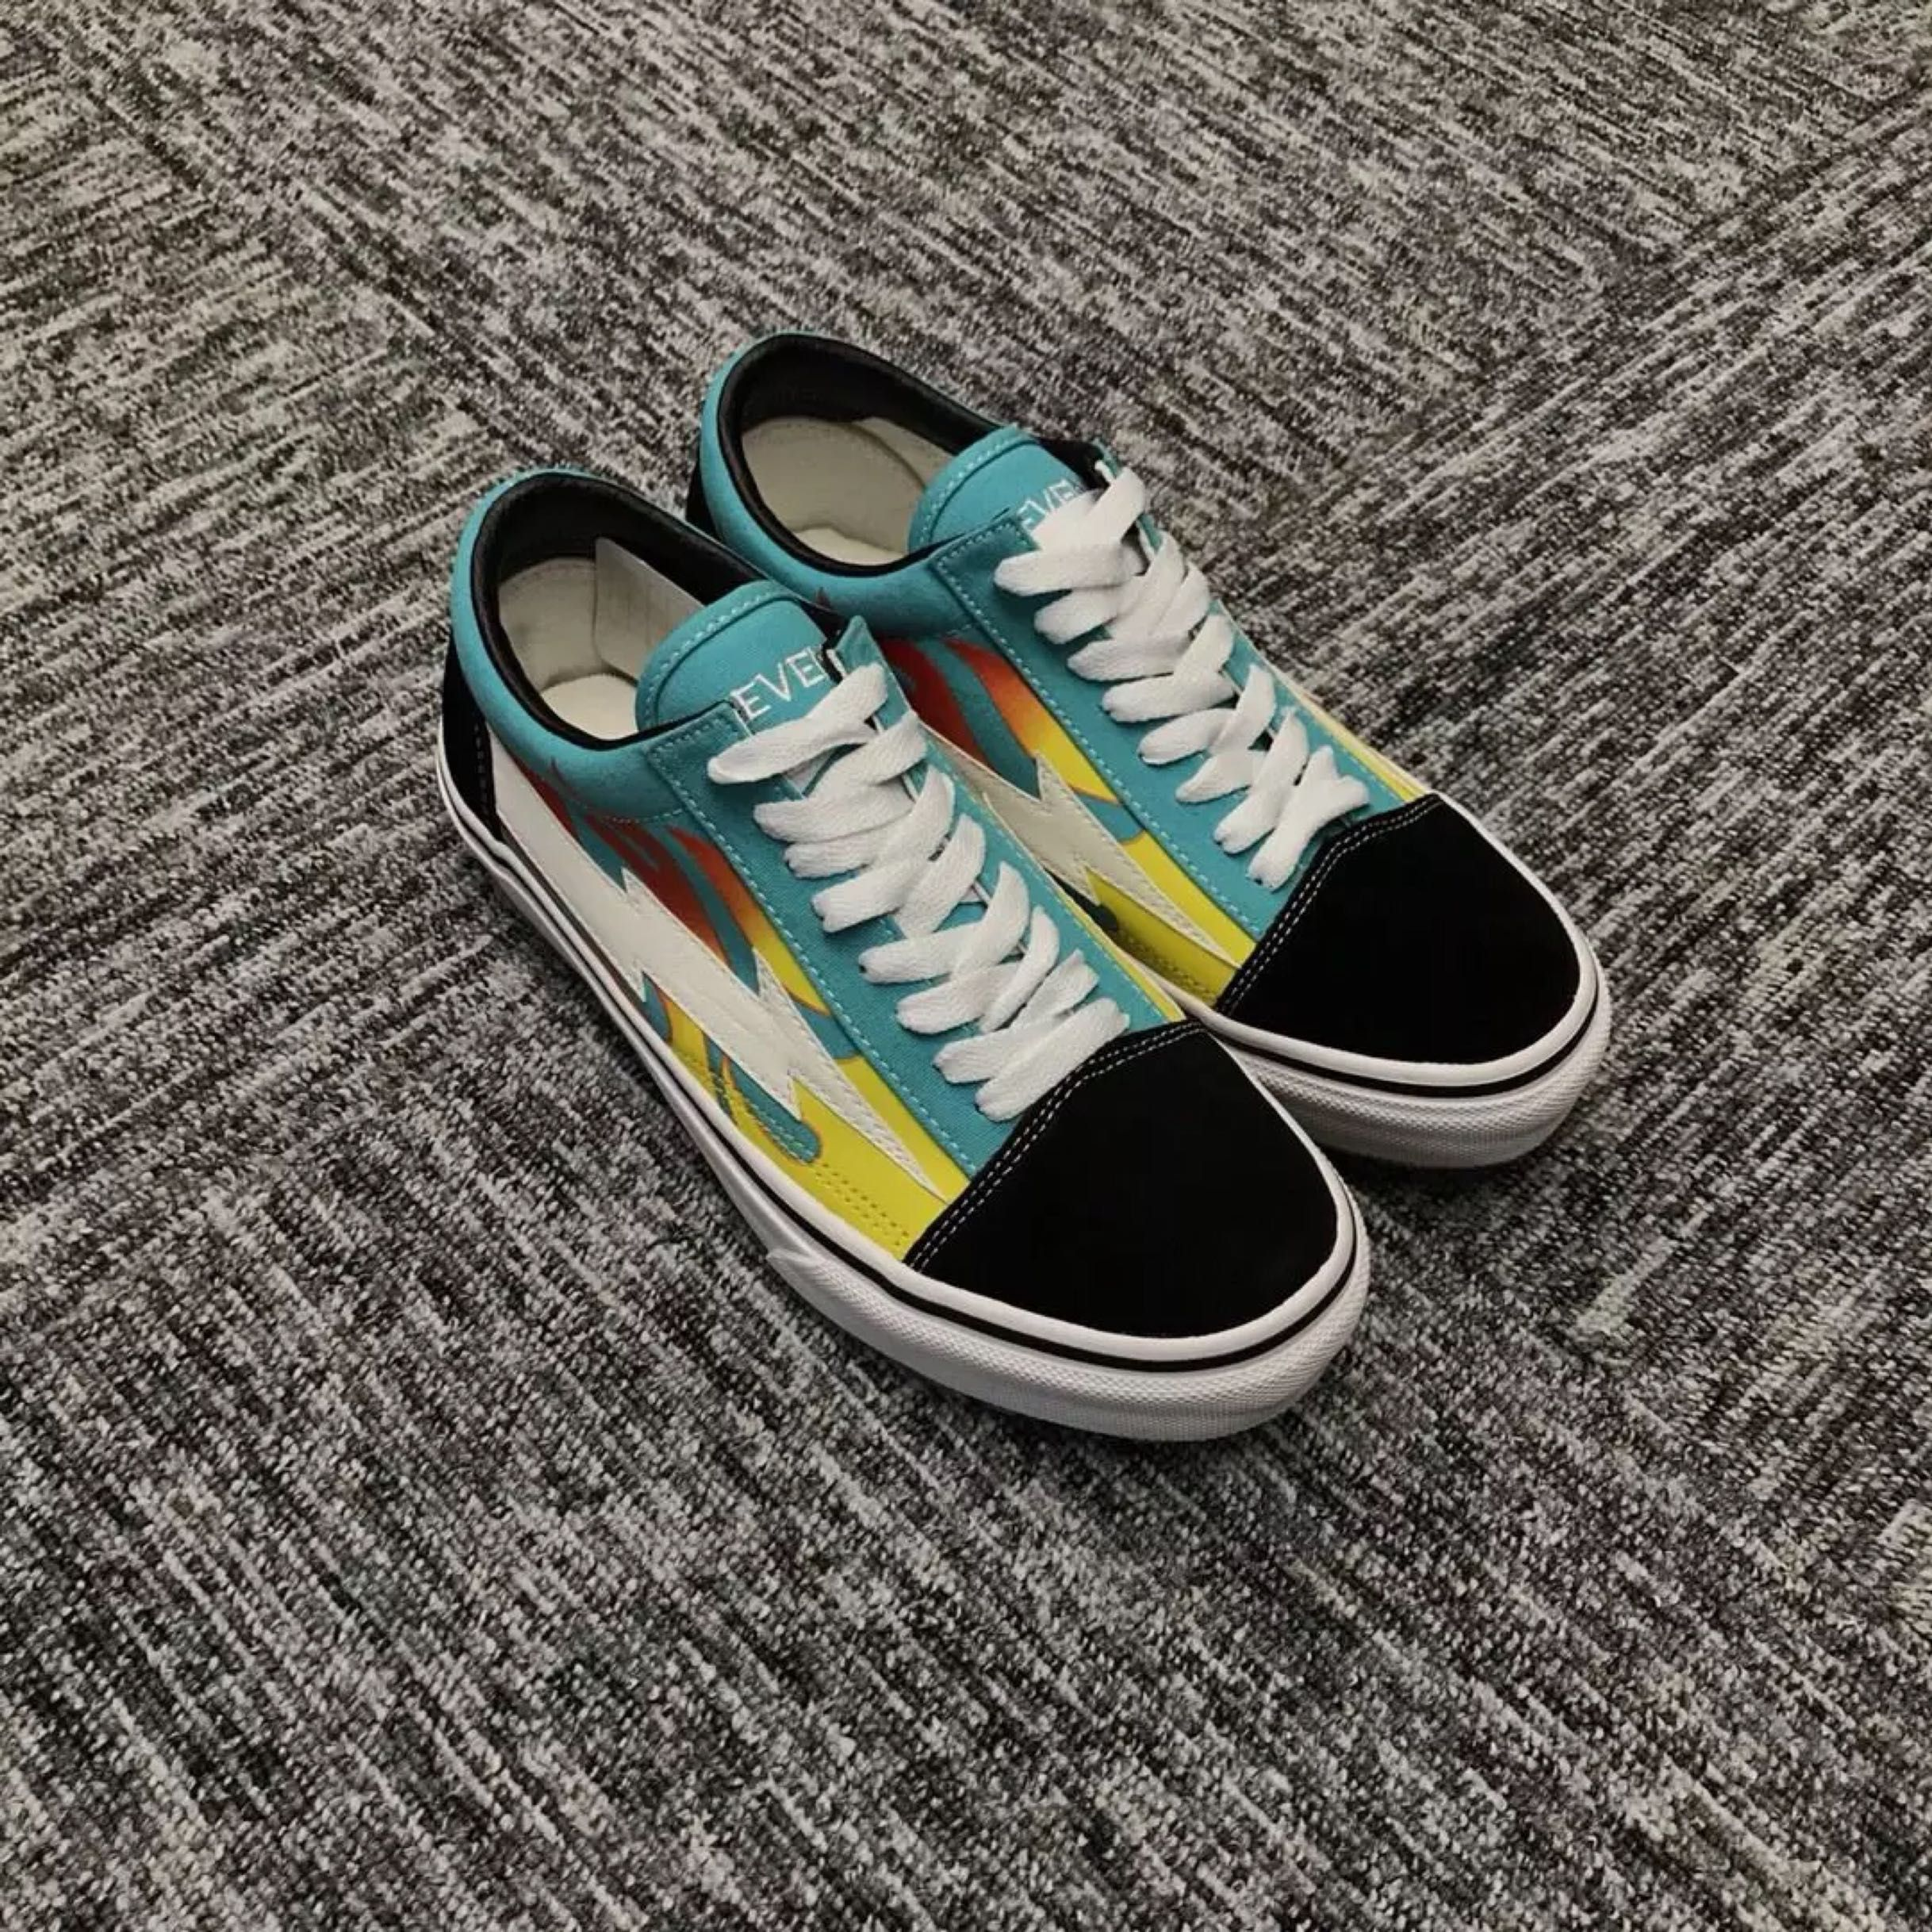 VANS OLD SKOOL REVENGE X STORM BLUE YELLOW FLAME REVS 010